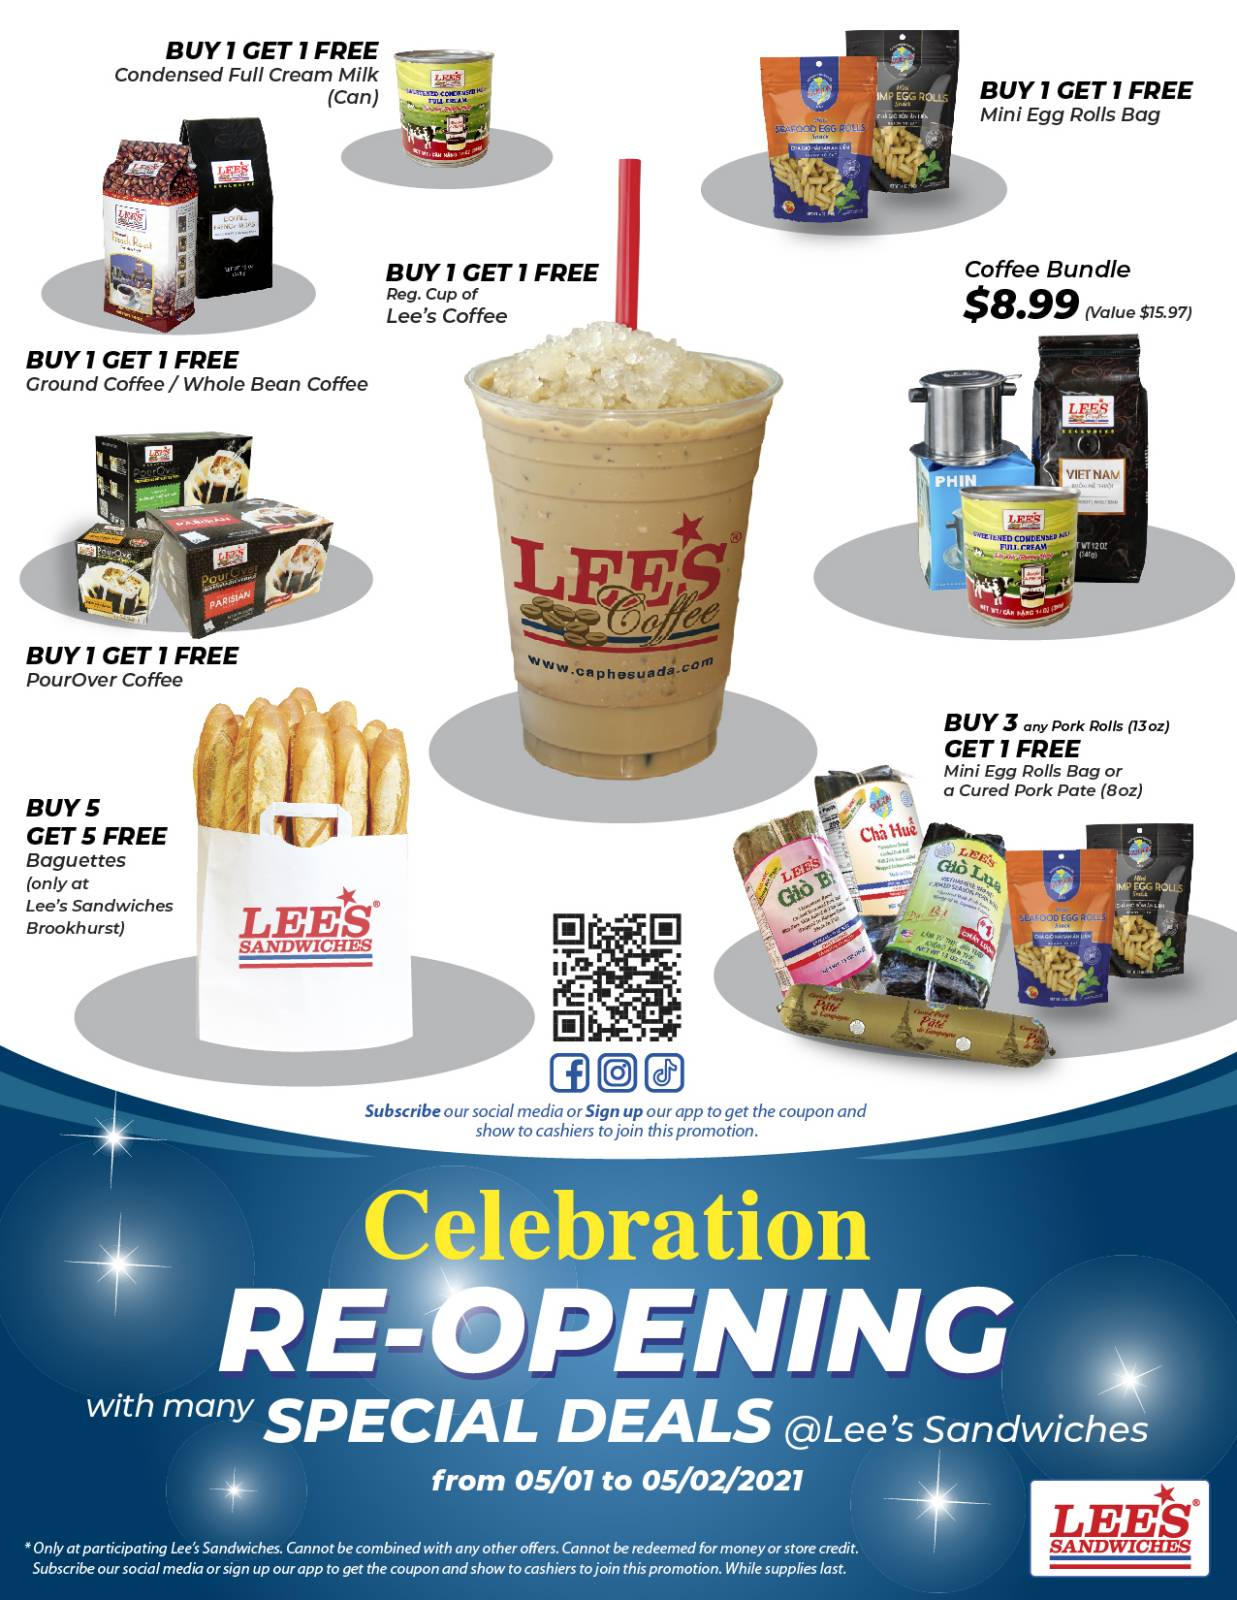 Subscribe our social media/App to get coupon of Re-opening promotion. Only 5/1-5/2/2021